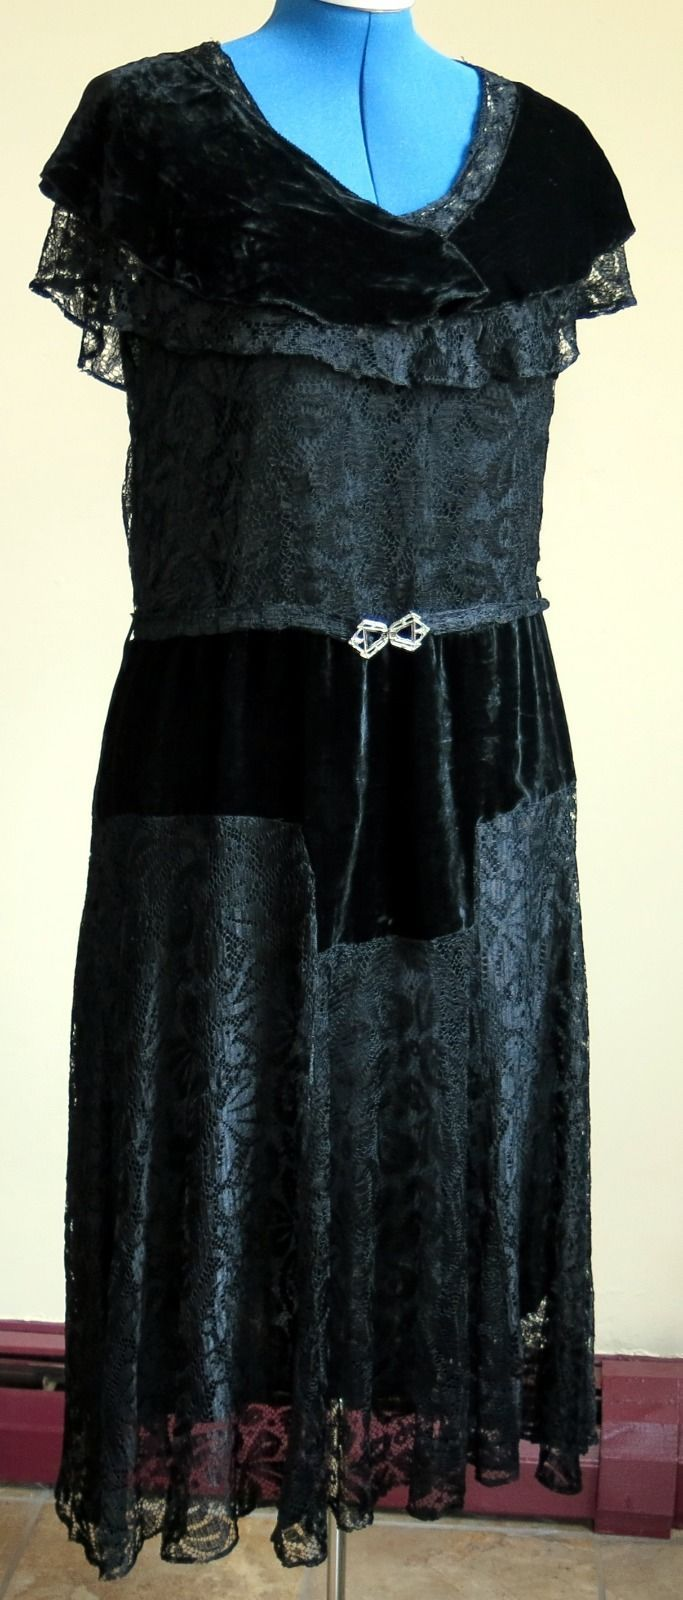 Us ture vintage handmade black lace and velvet party dress